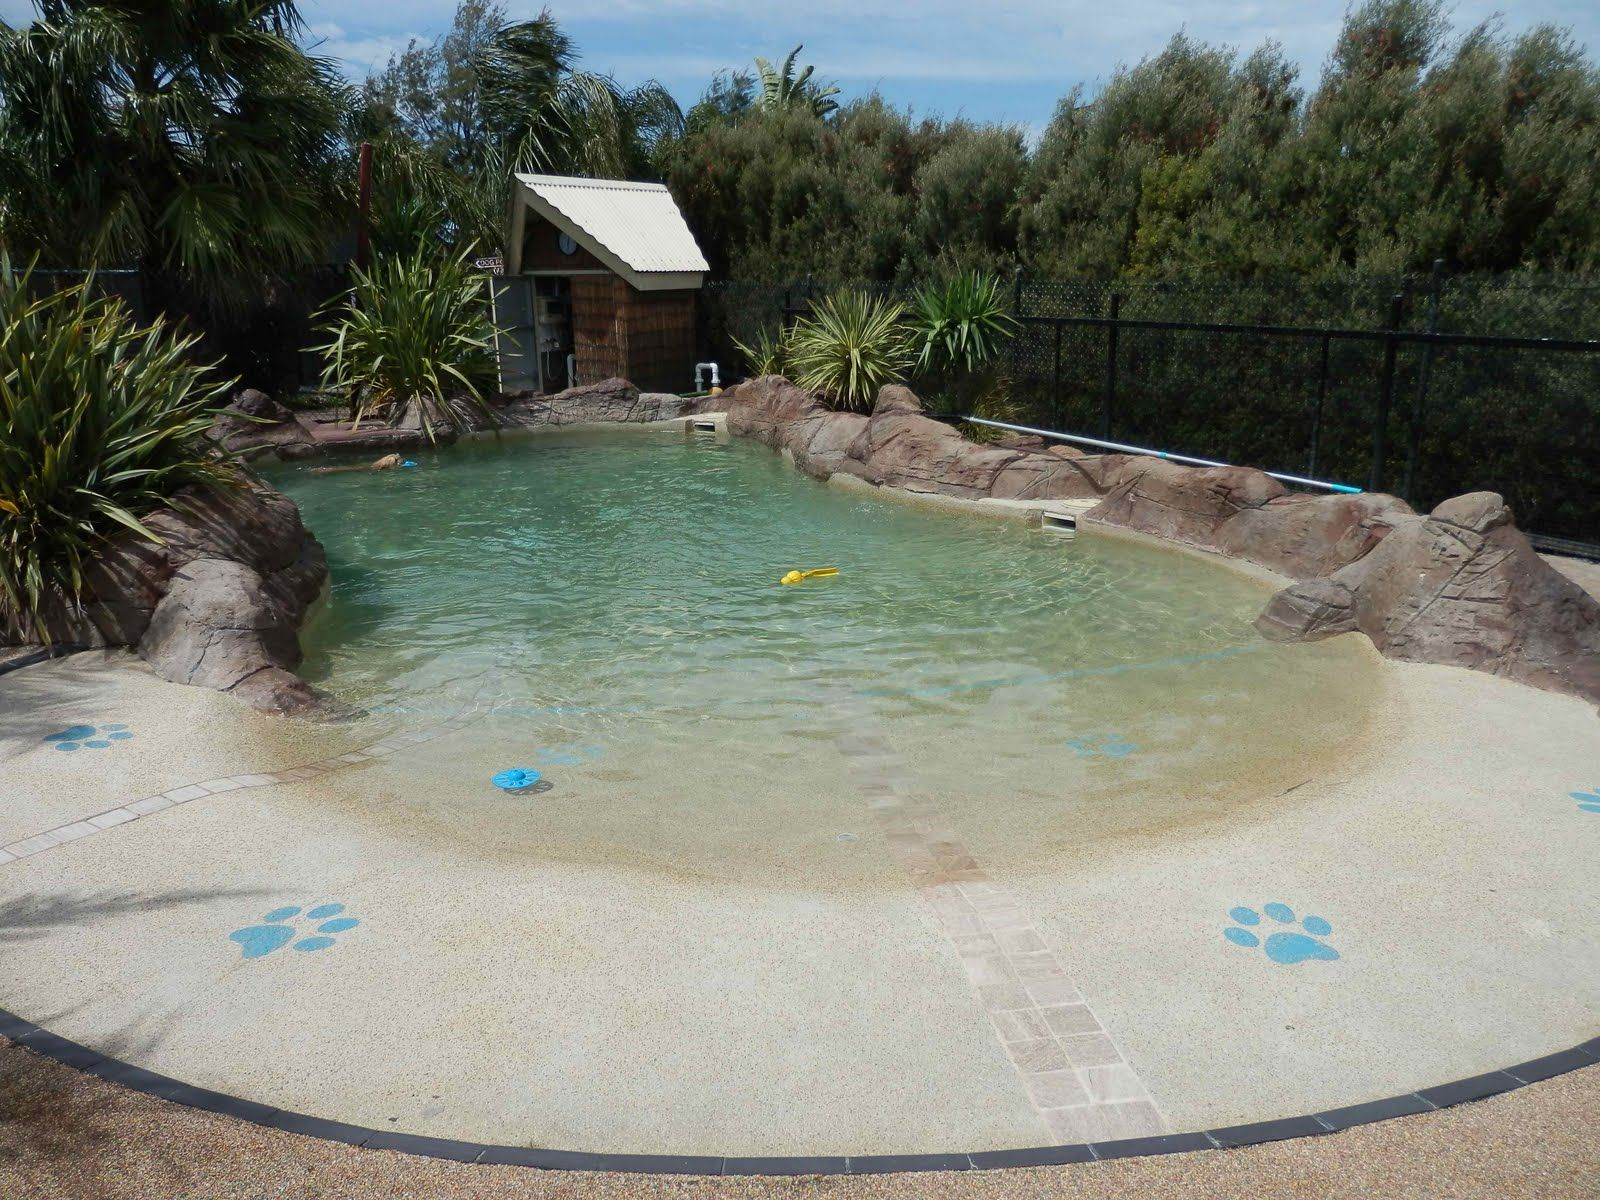 dog swimming pools here 39 s a dog 39 s eye view of the water inviting dogs pinterest hunde. Black Bedroom Furniture Sets. Home Design Ideas